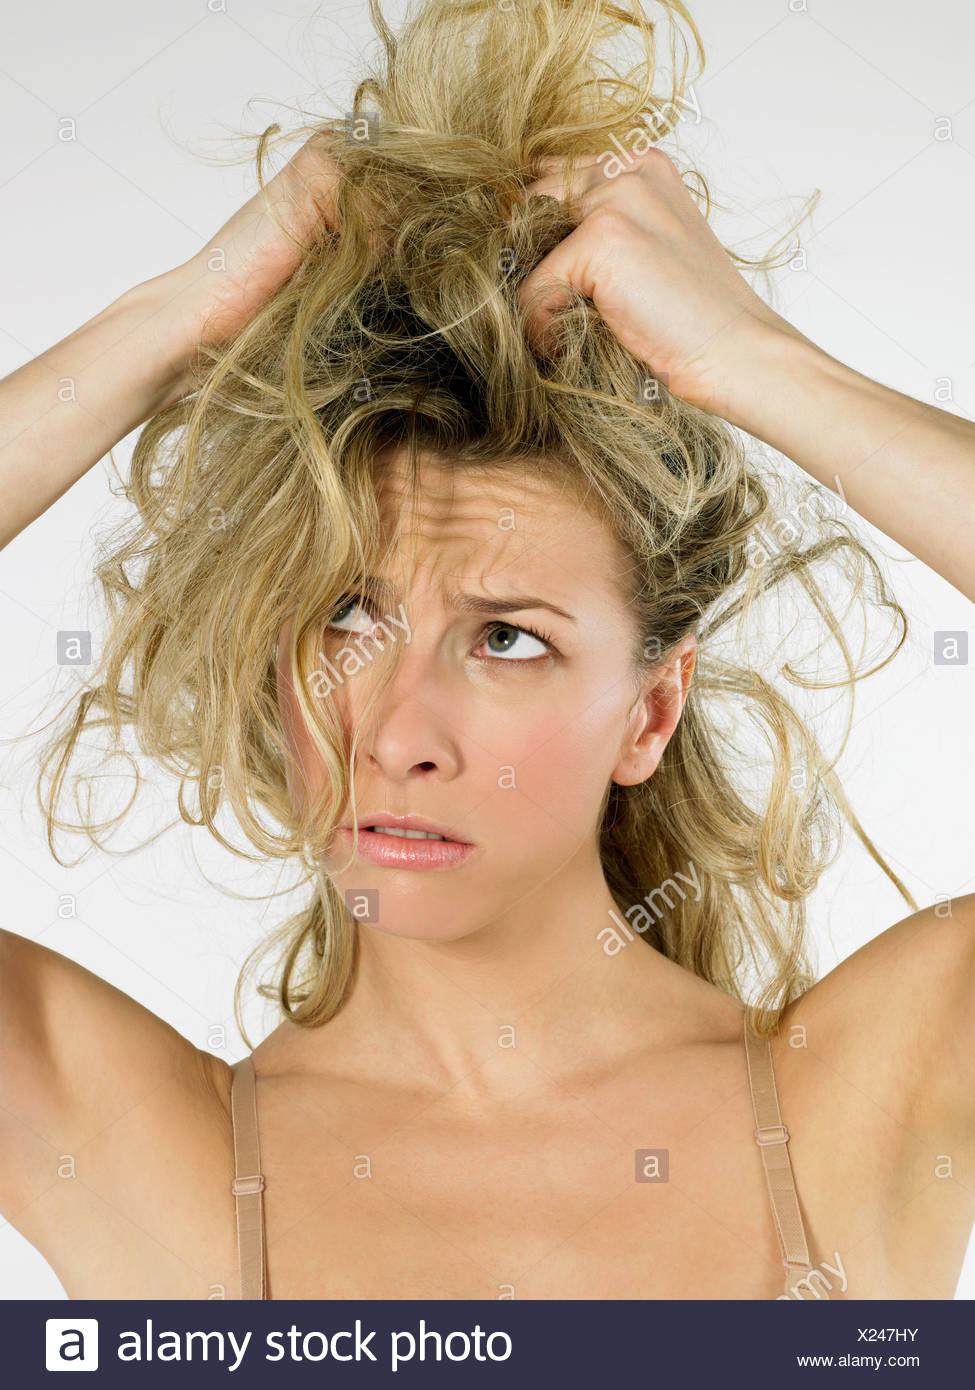 Woman with messy hair - Stock Image